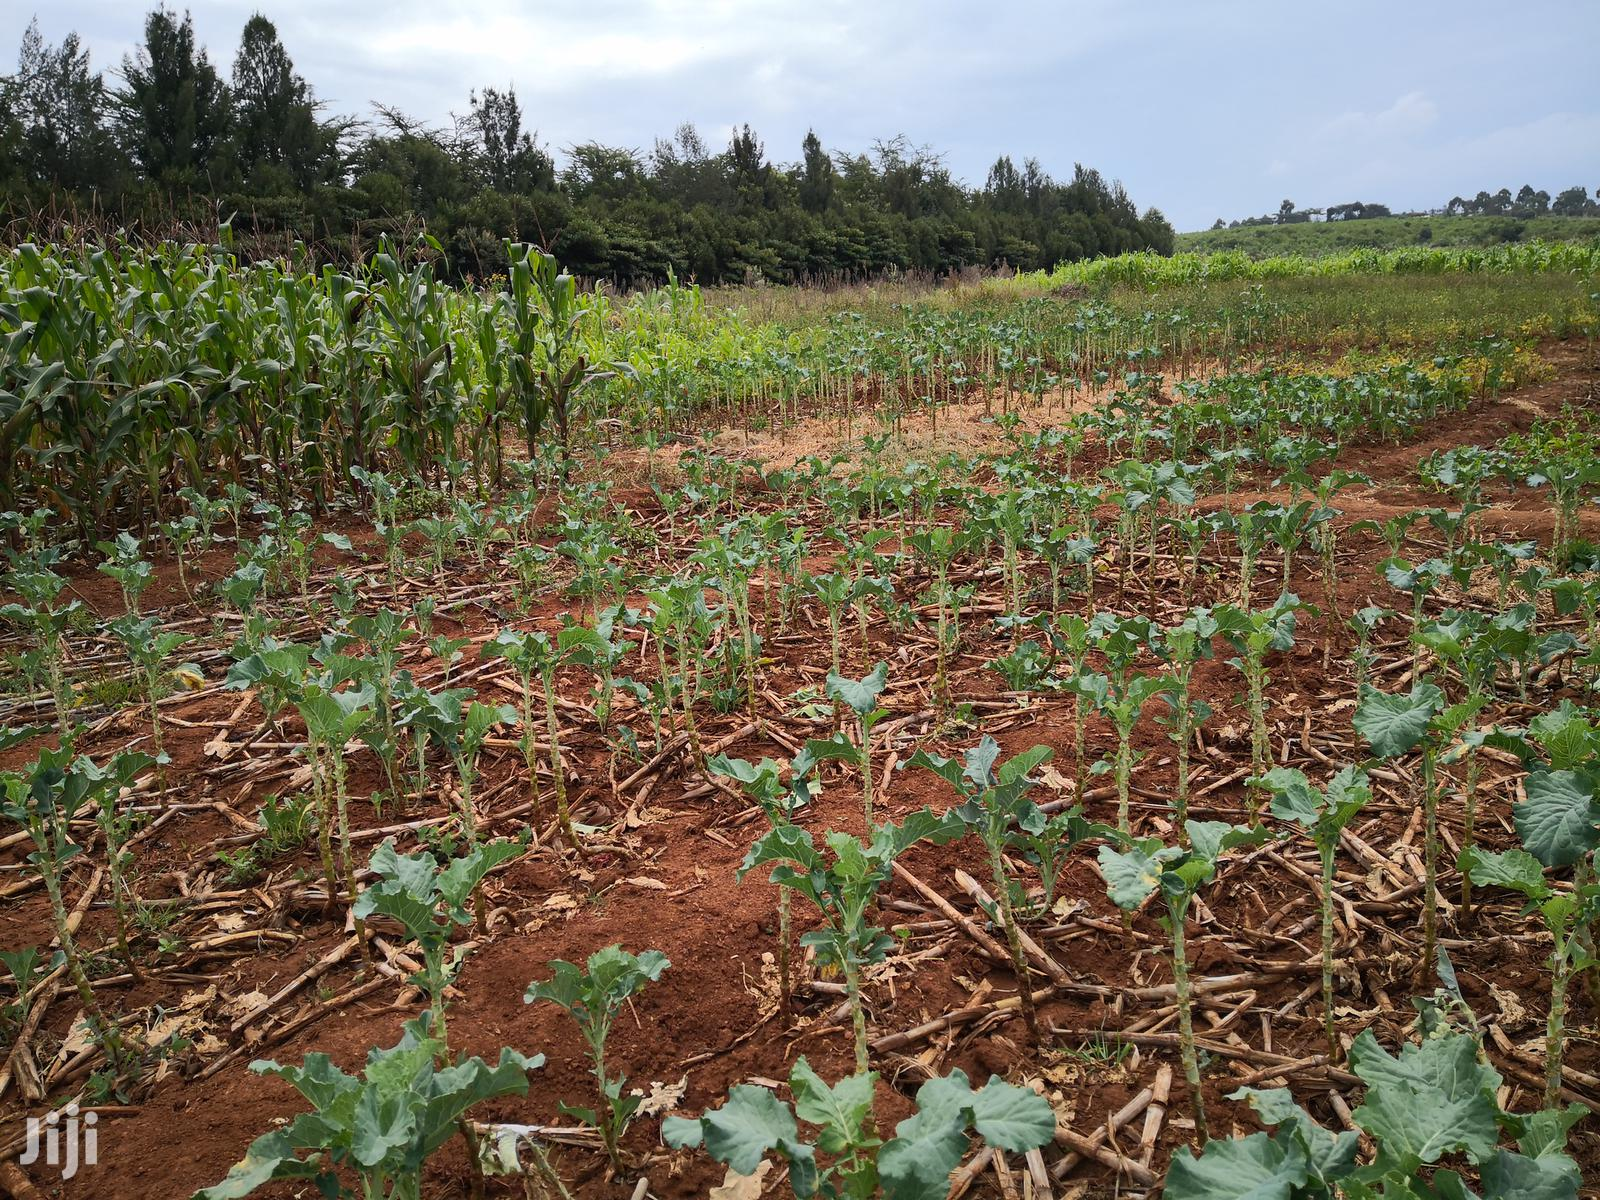 50x100 Prime Plot for Sale in Gilgil Nakuru County. | Land & Plots For Sale for sale in Gilgil, Nakuru, Kenya